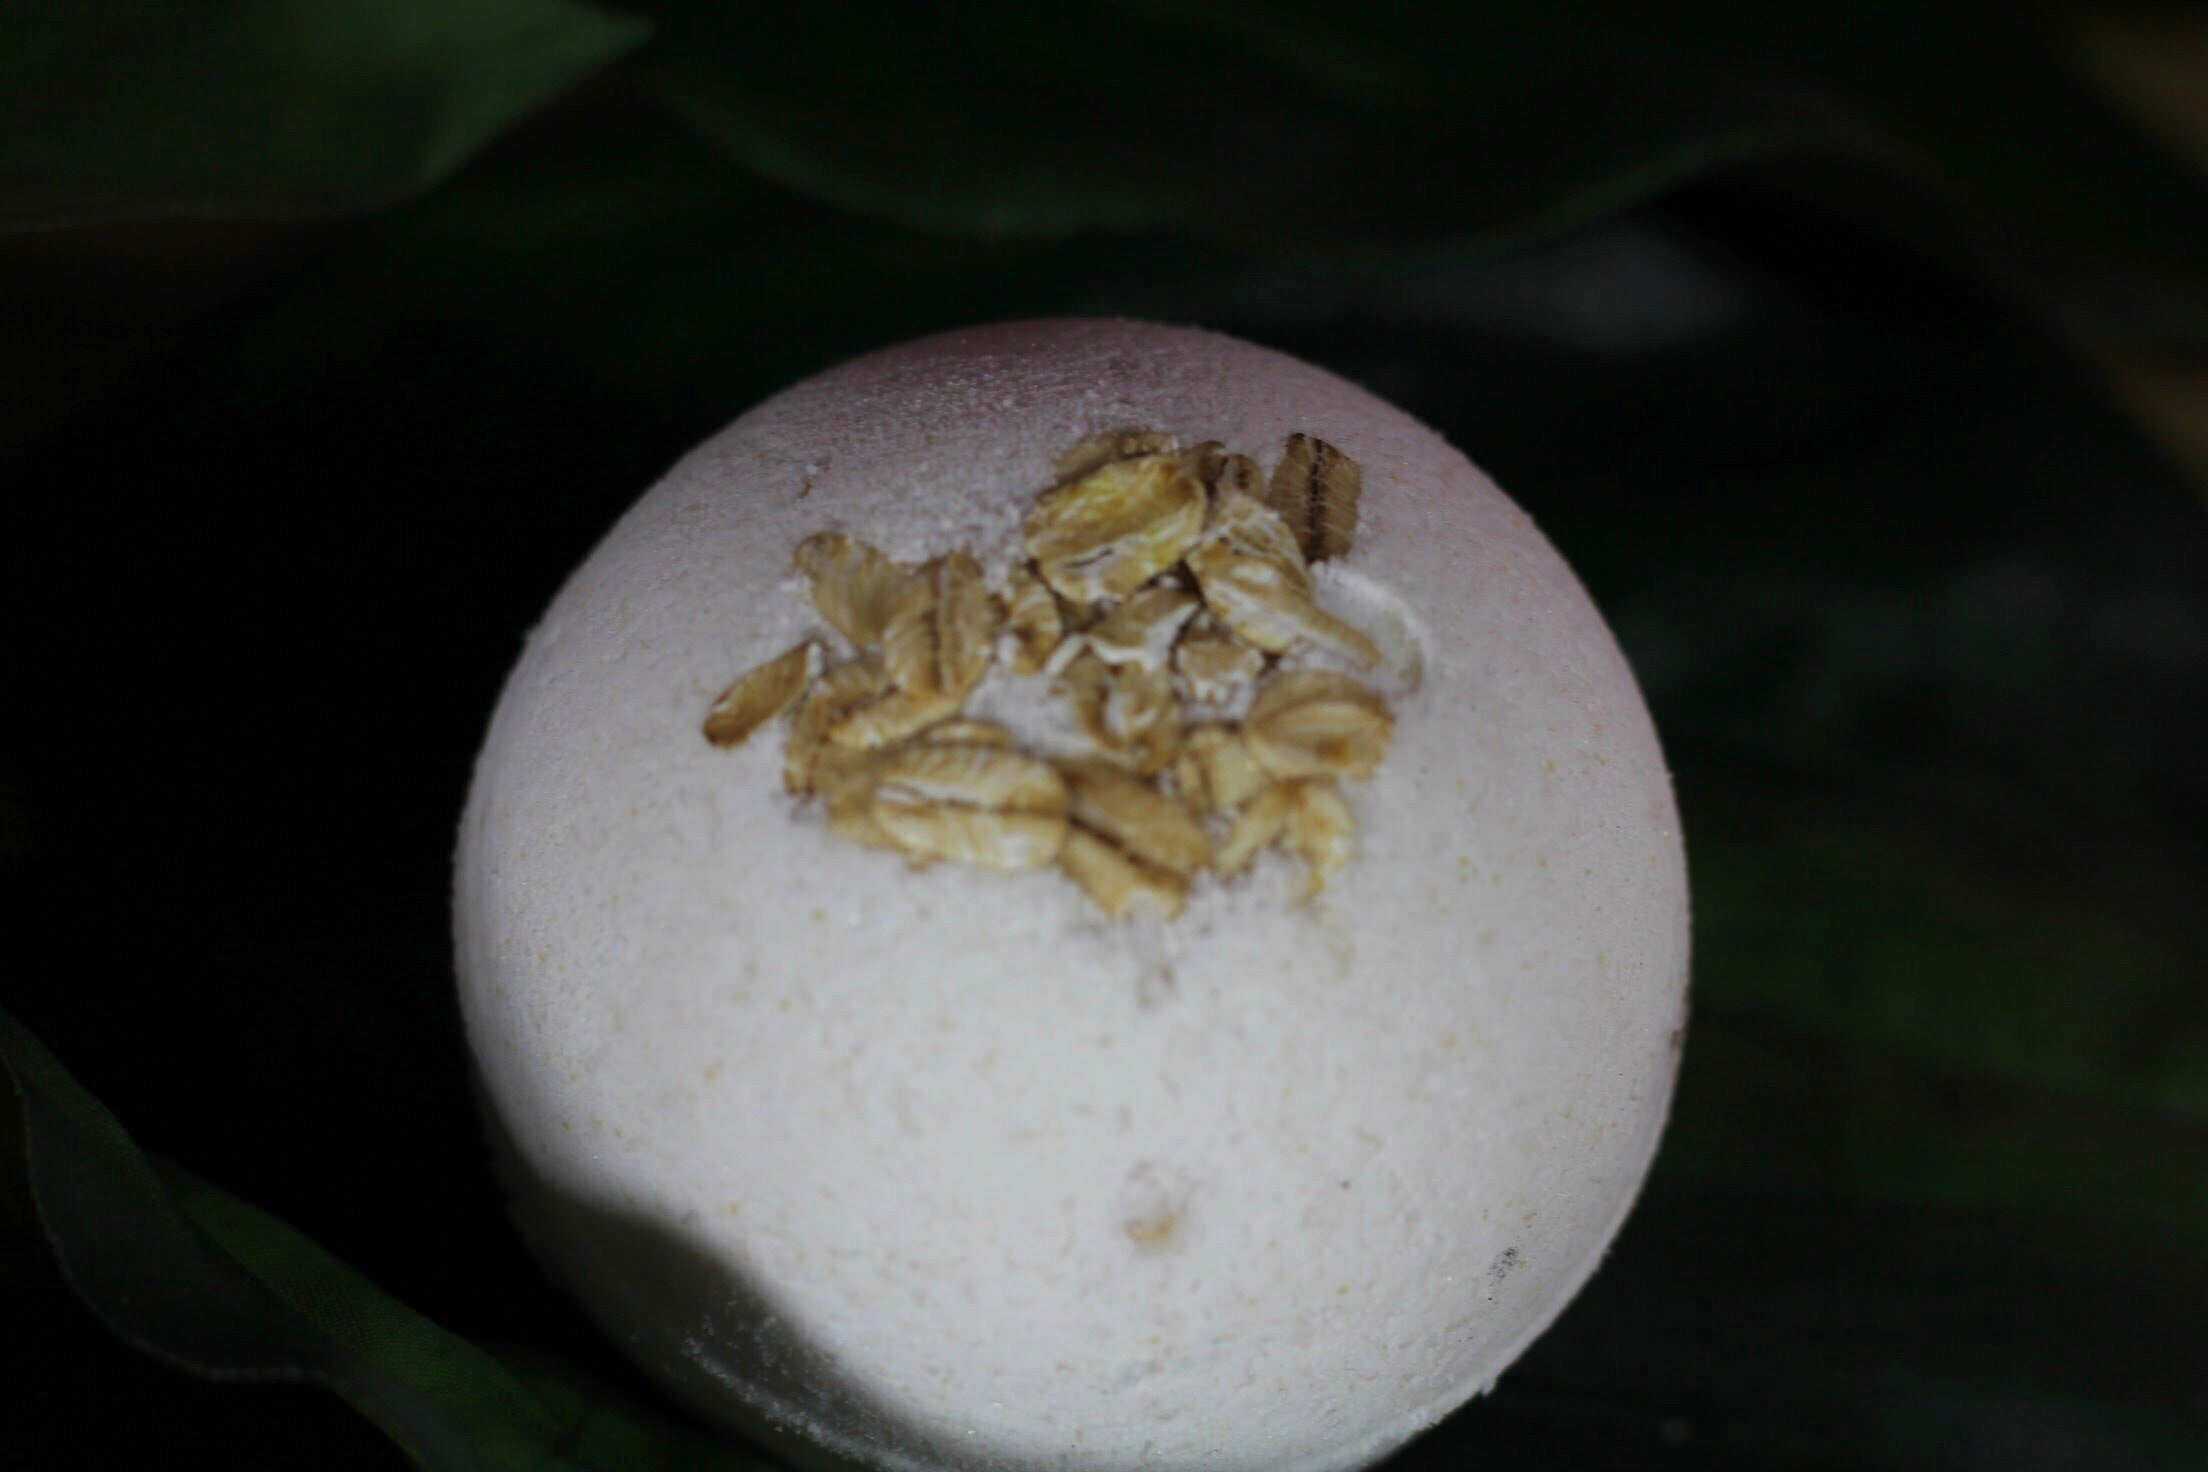 Nefertiti's Milk-Bath Bomb